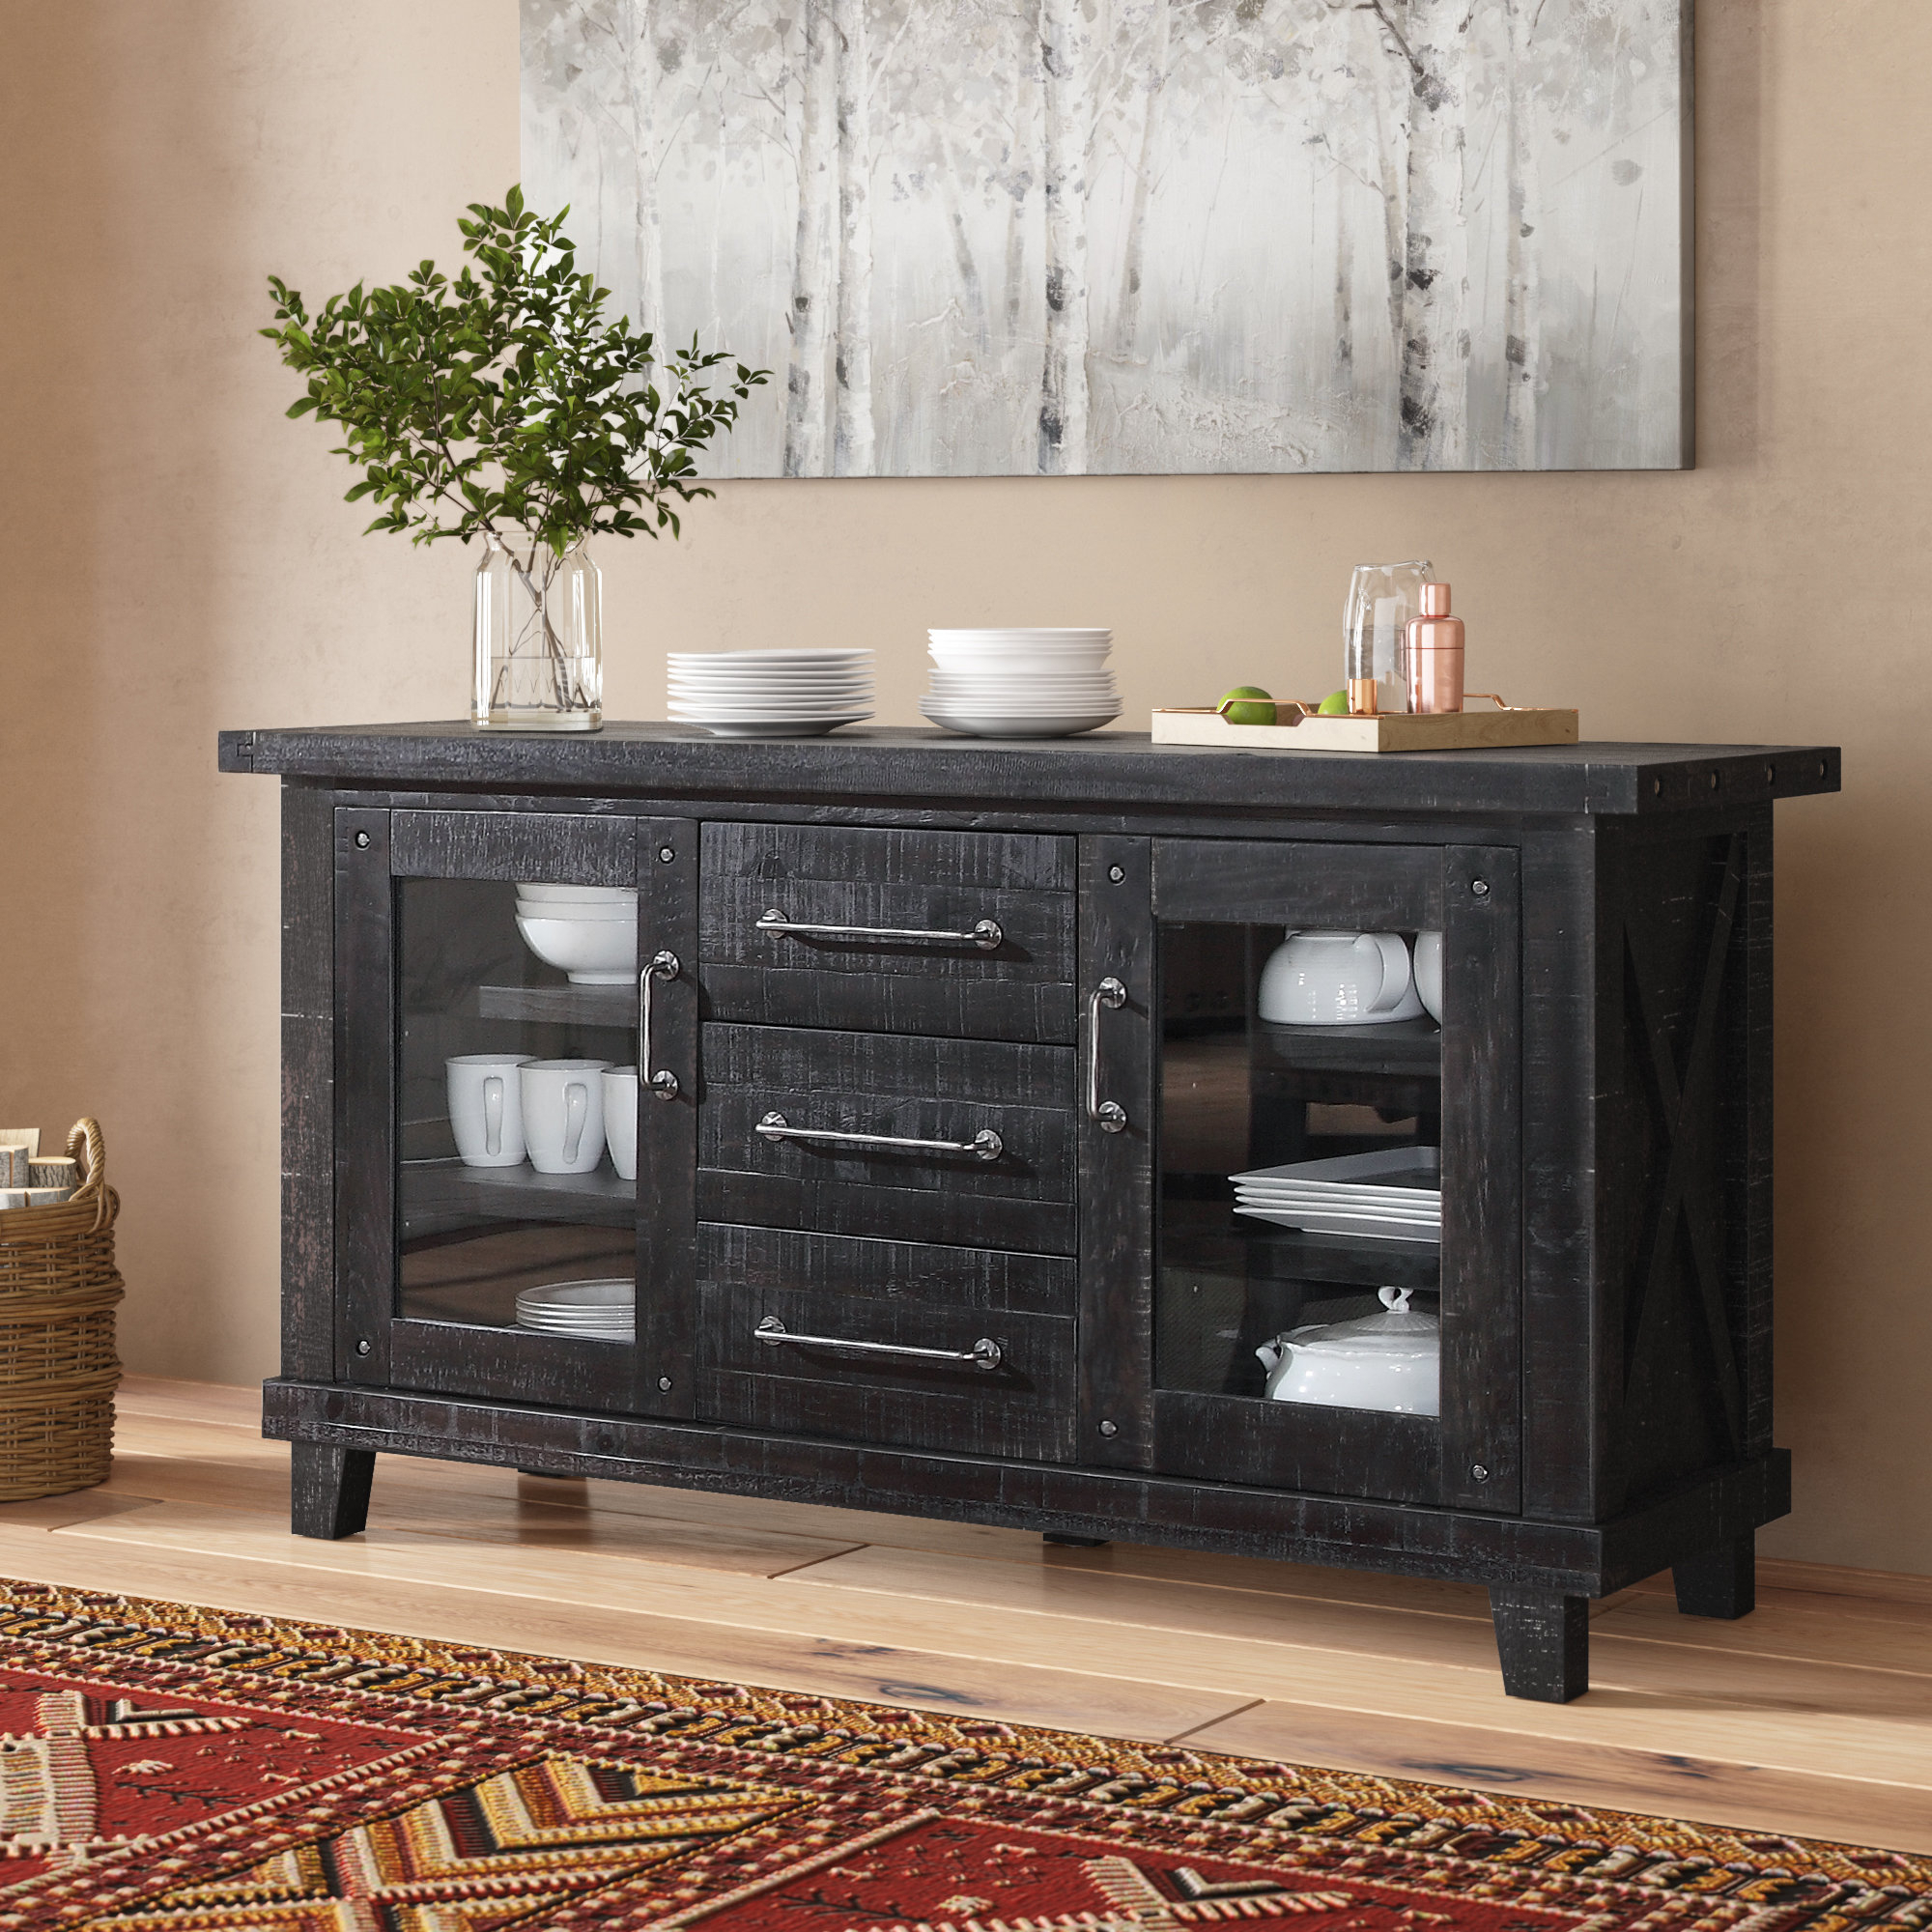 Trendy Chicoree Charlena Sideboards Intended For Cottage & Country Sideboard / Credenza Sideboards & Buffets (View 19 of 20)